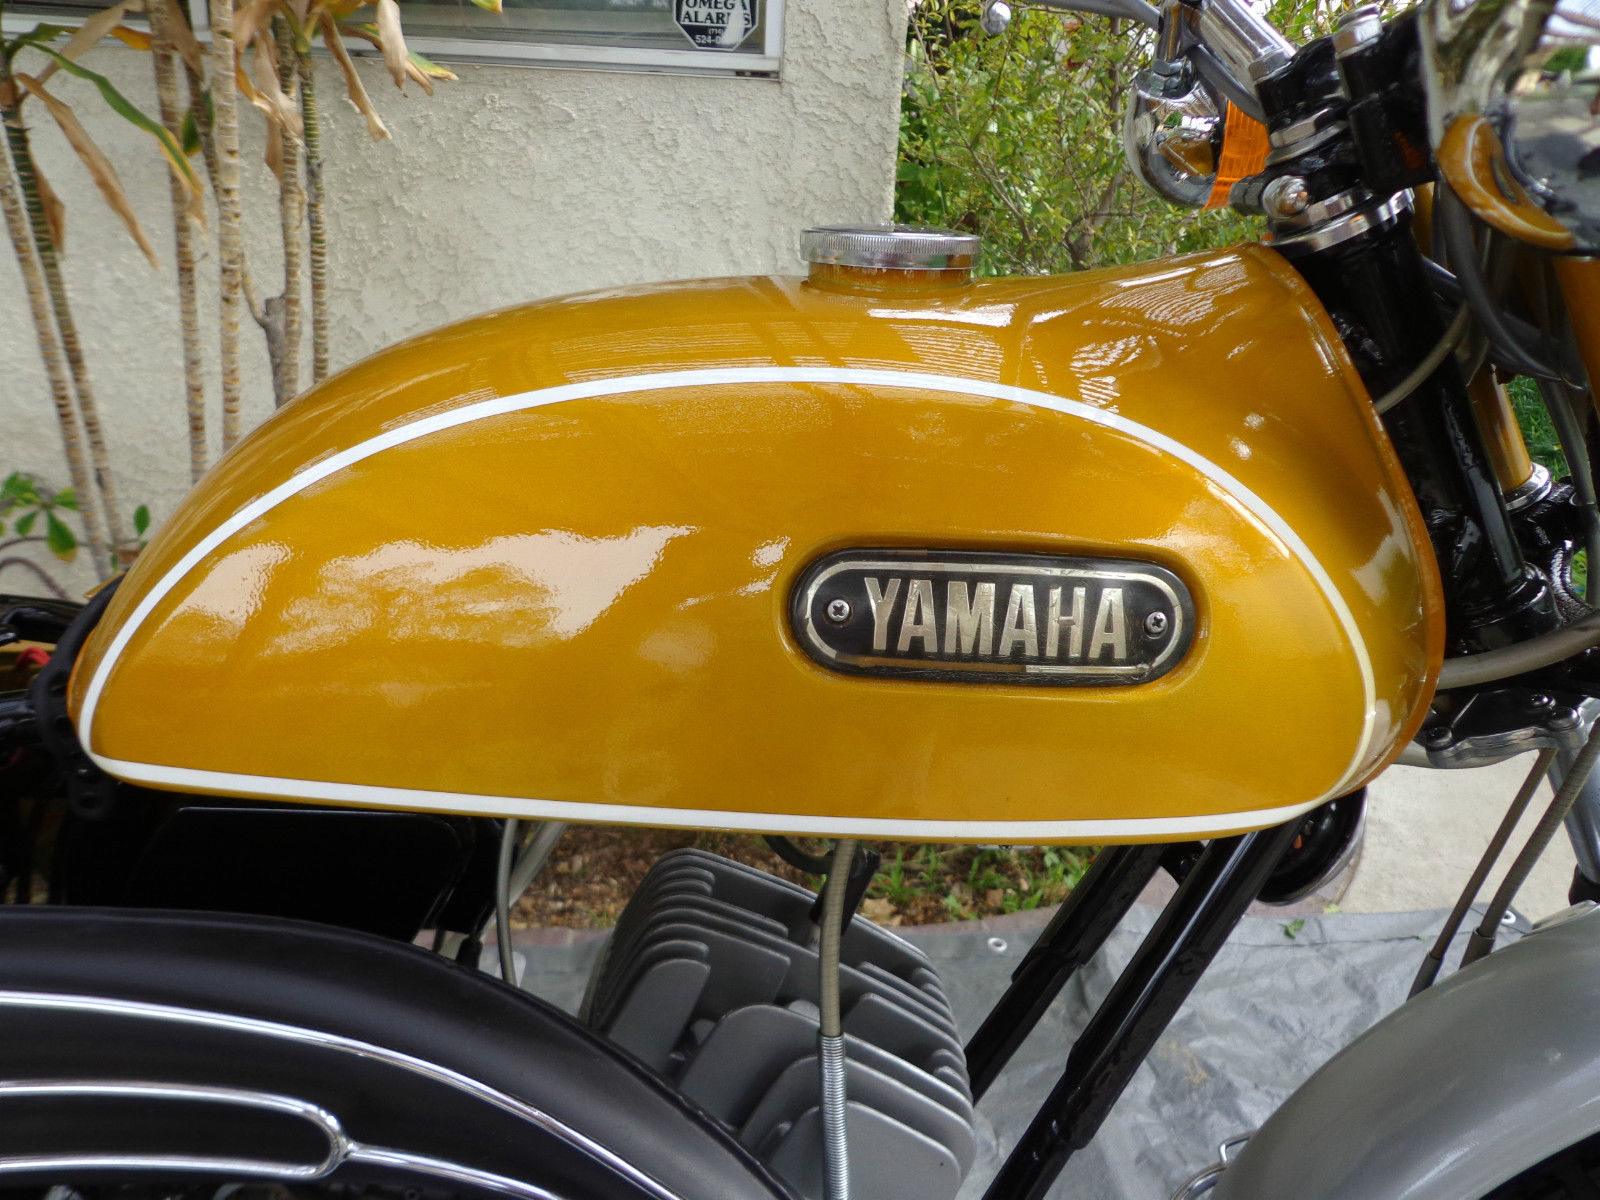 Yamaha CT1 175 Enduro - 1971 - Gas Tank, Yamaha Badge and Cylinder Head.